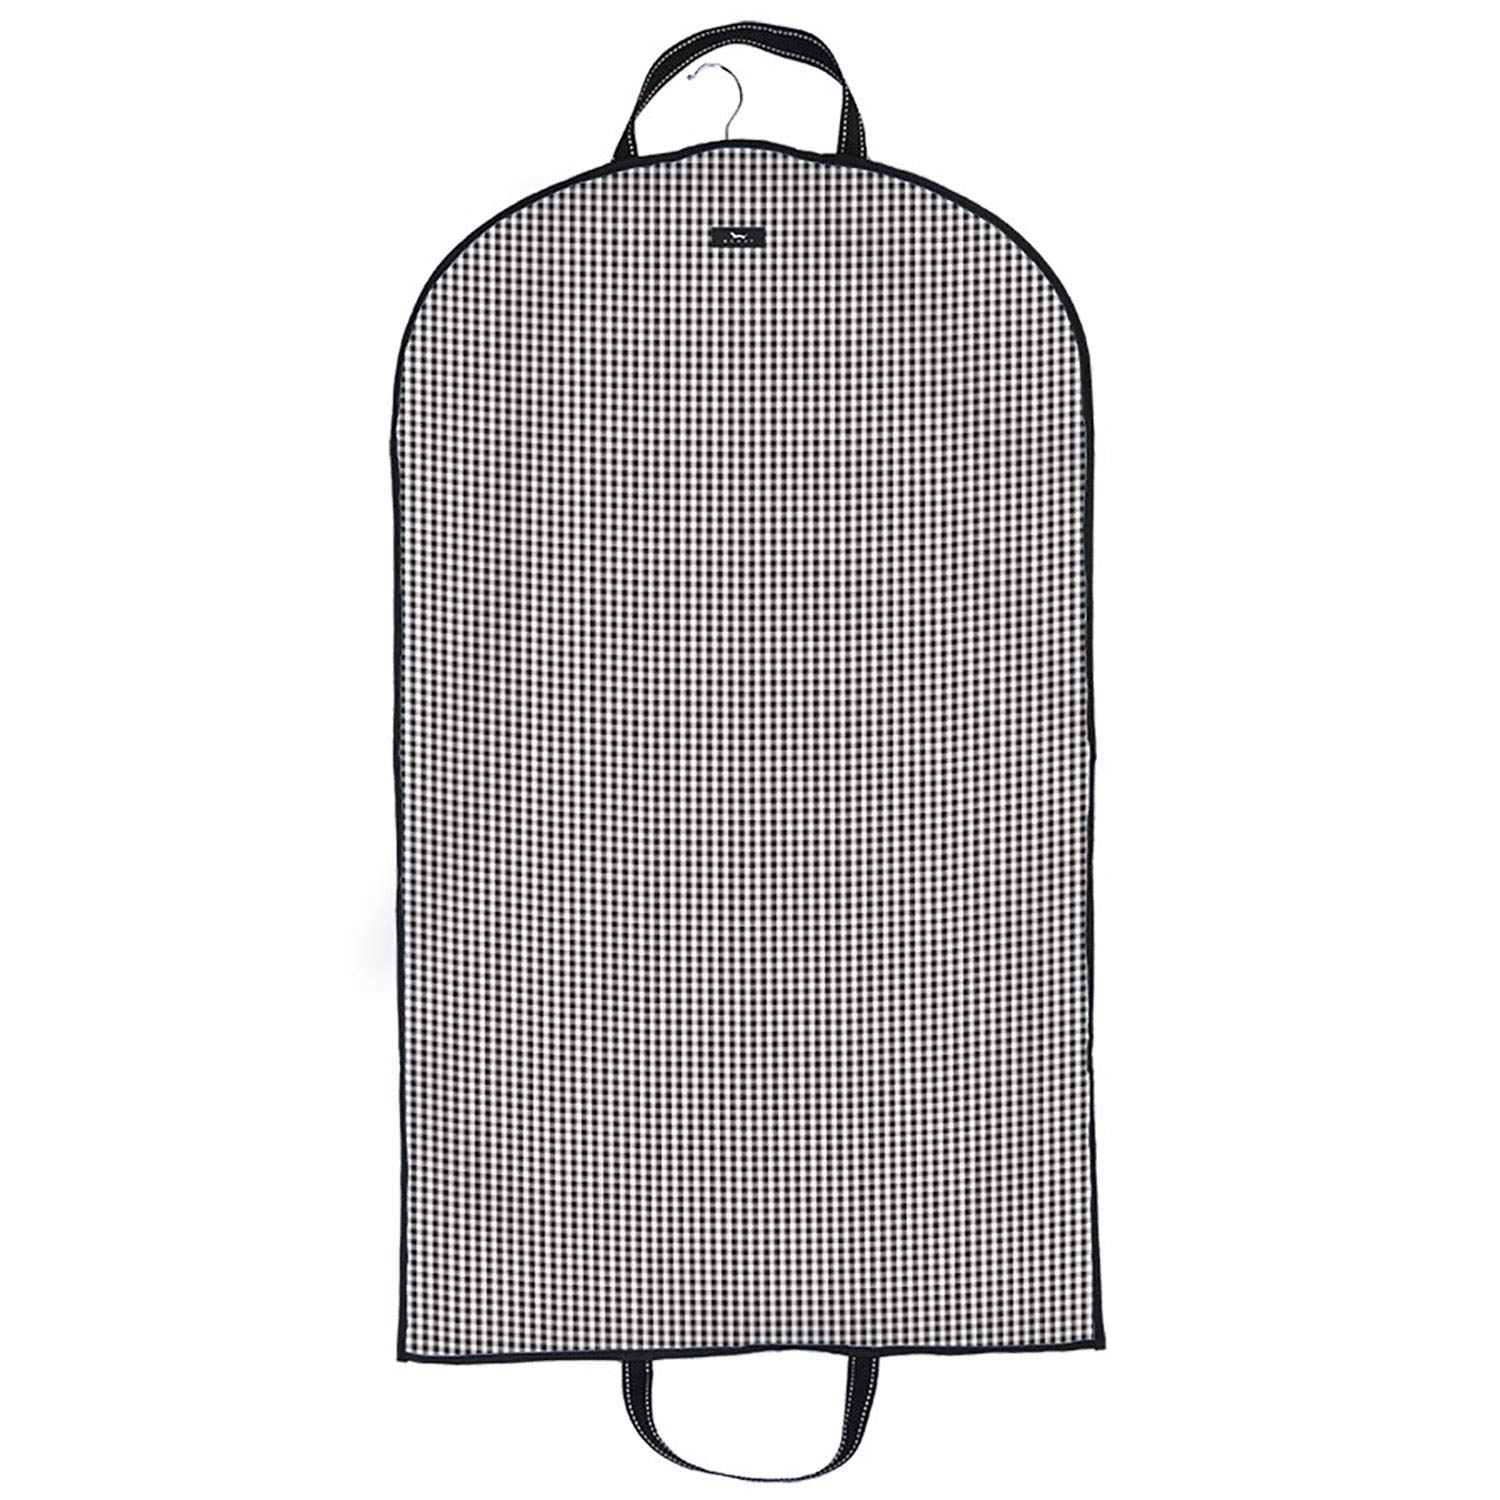 4dc1c7f4090a SCOUT GOWN AND OUT Garment Bag for Travel, Folding Garment Bag for Women  (Multiple Patterns Available)